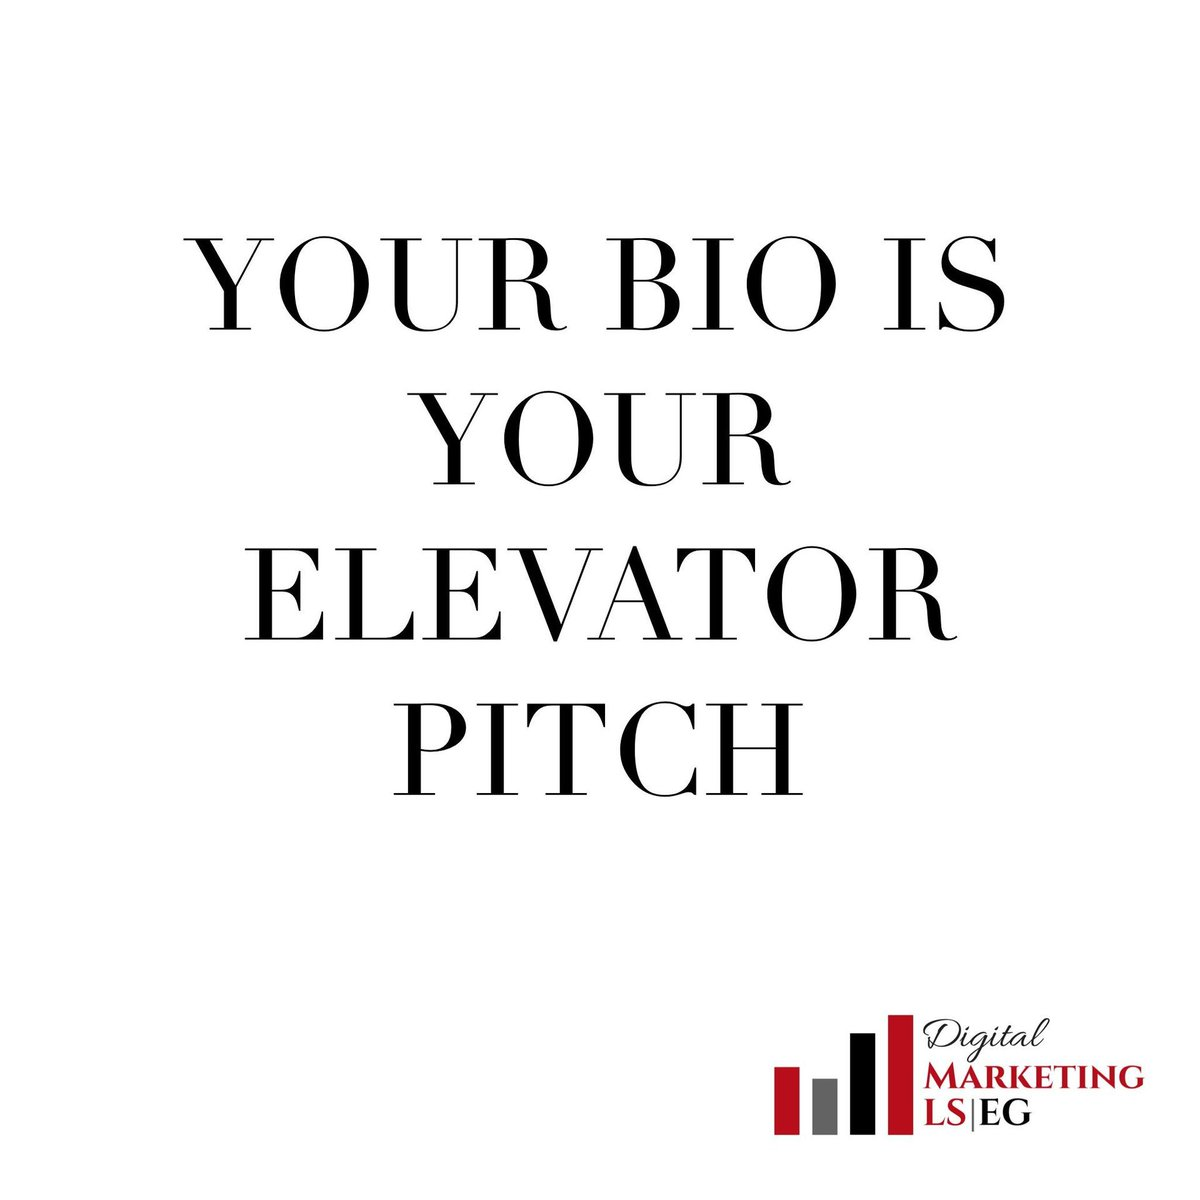 Your bio has the same function as your elevator pitch. #taketheleap #followyourbliss #smallbiztipspic.twitter.com/G3tZY64Ua6